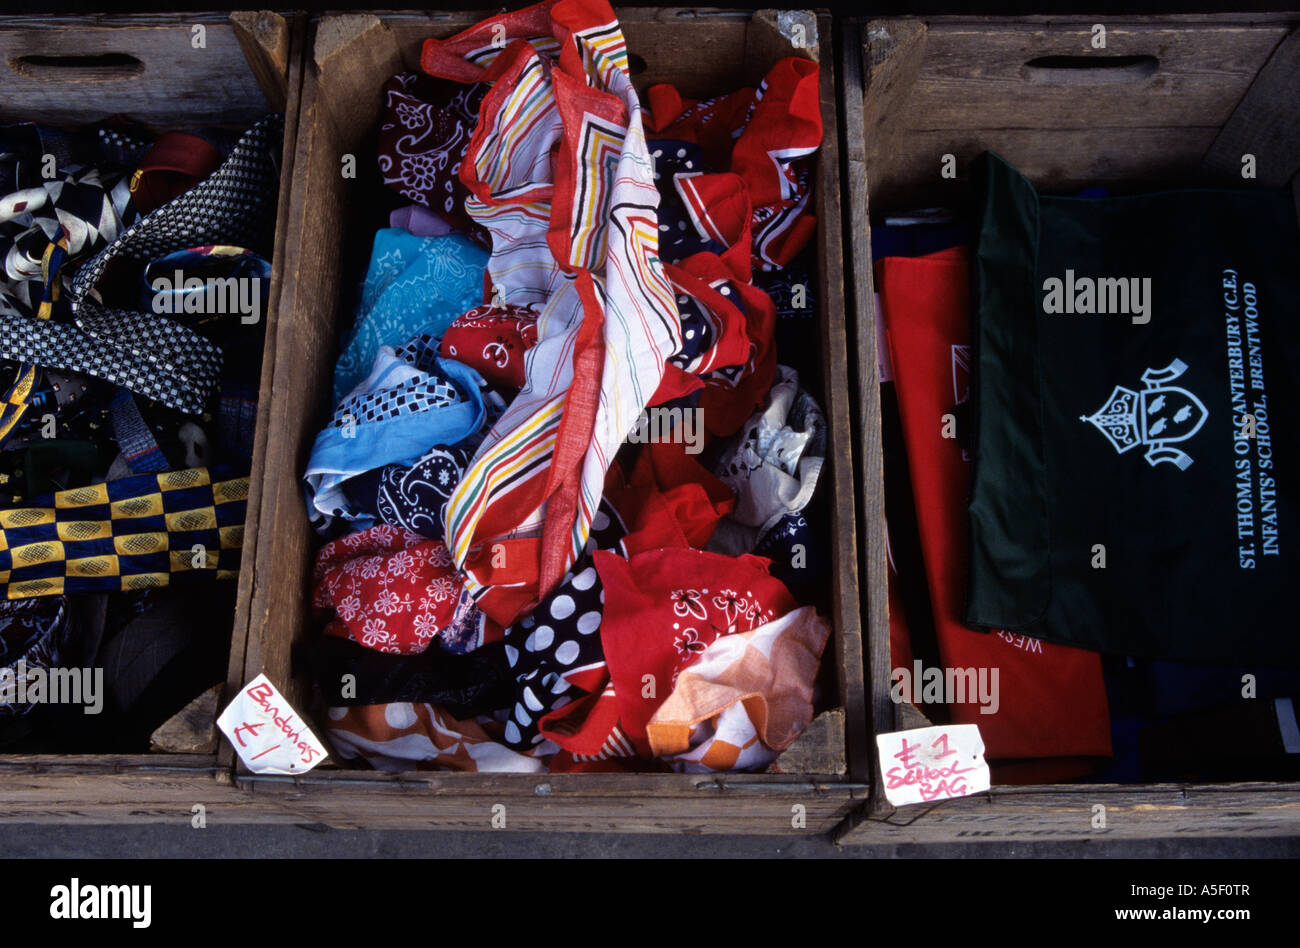 Ties bandanas and school bags for sale at a London street stall - Stock Image